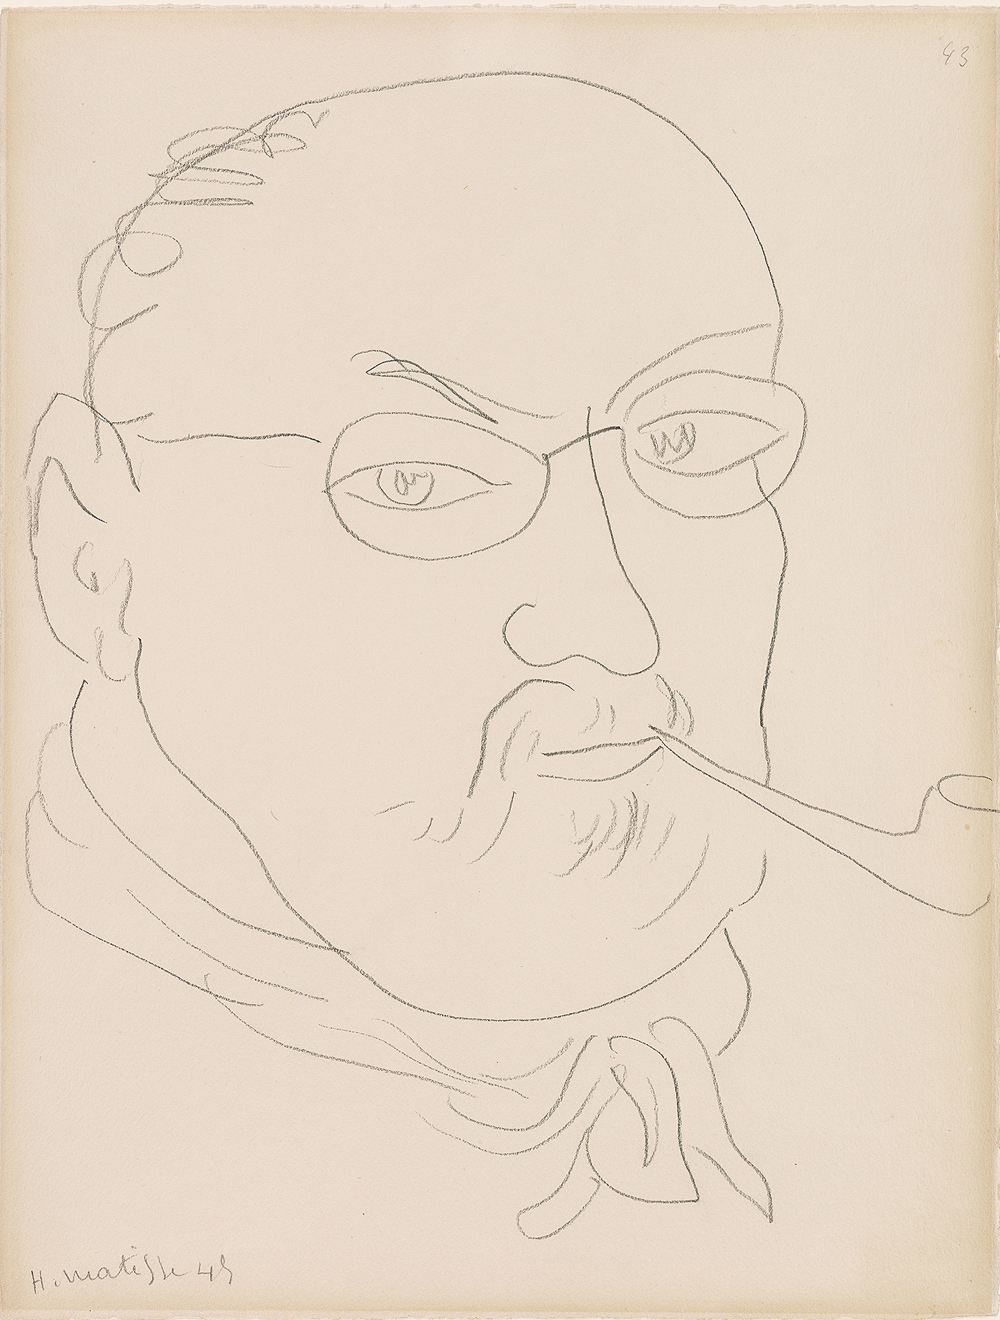 """Henri Matisse, """"Self-Portrait"""" (1945). Graphite on paper. Thaw Collection, The Morgan Library & Museum. © 2015 Succession H. Matisse / Artists Rights Society (ARS), New York."""